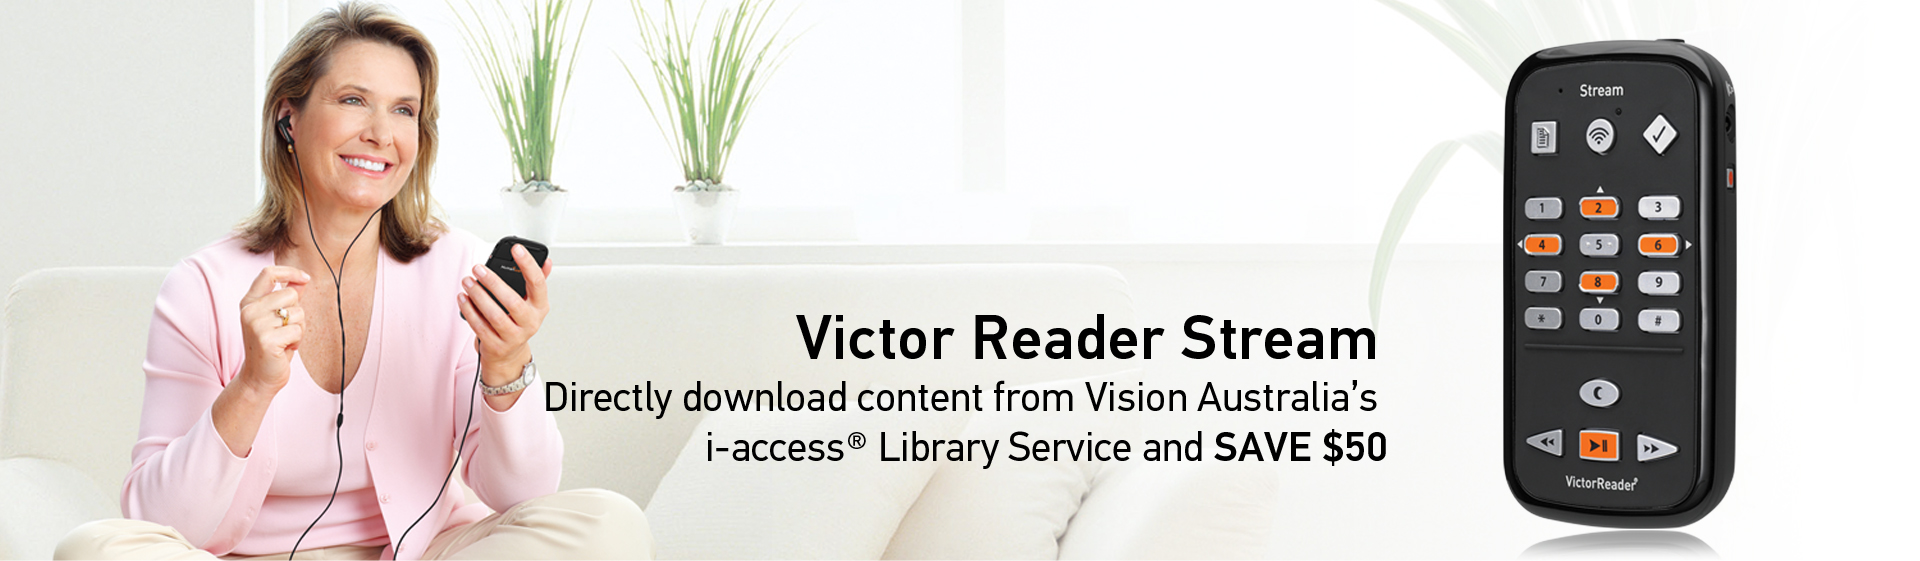 Victor Reader Stream - Directly download content from Vision Australia's i-access Library Service